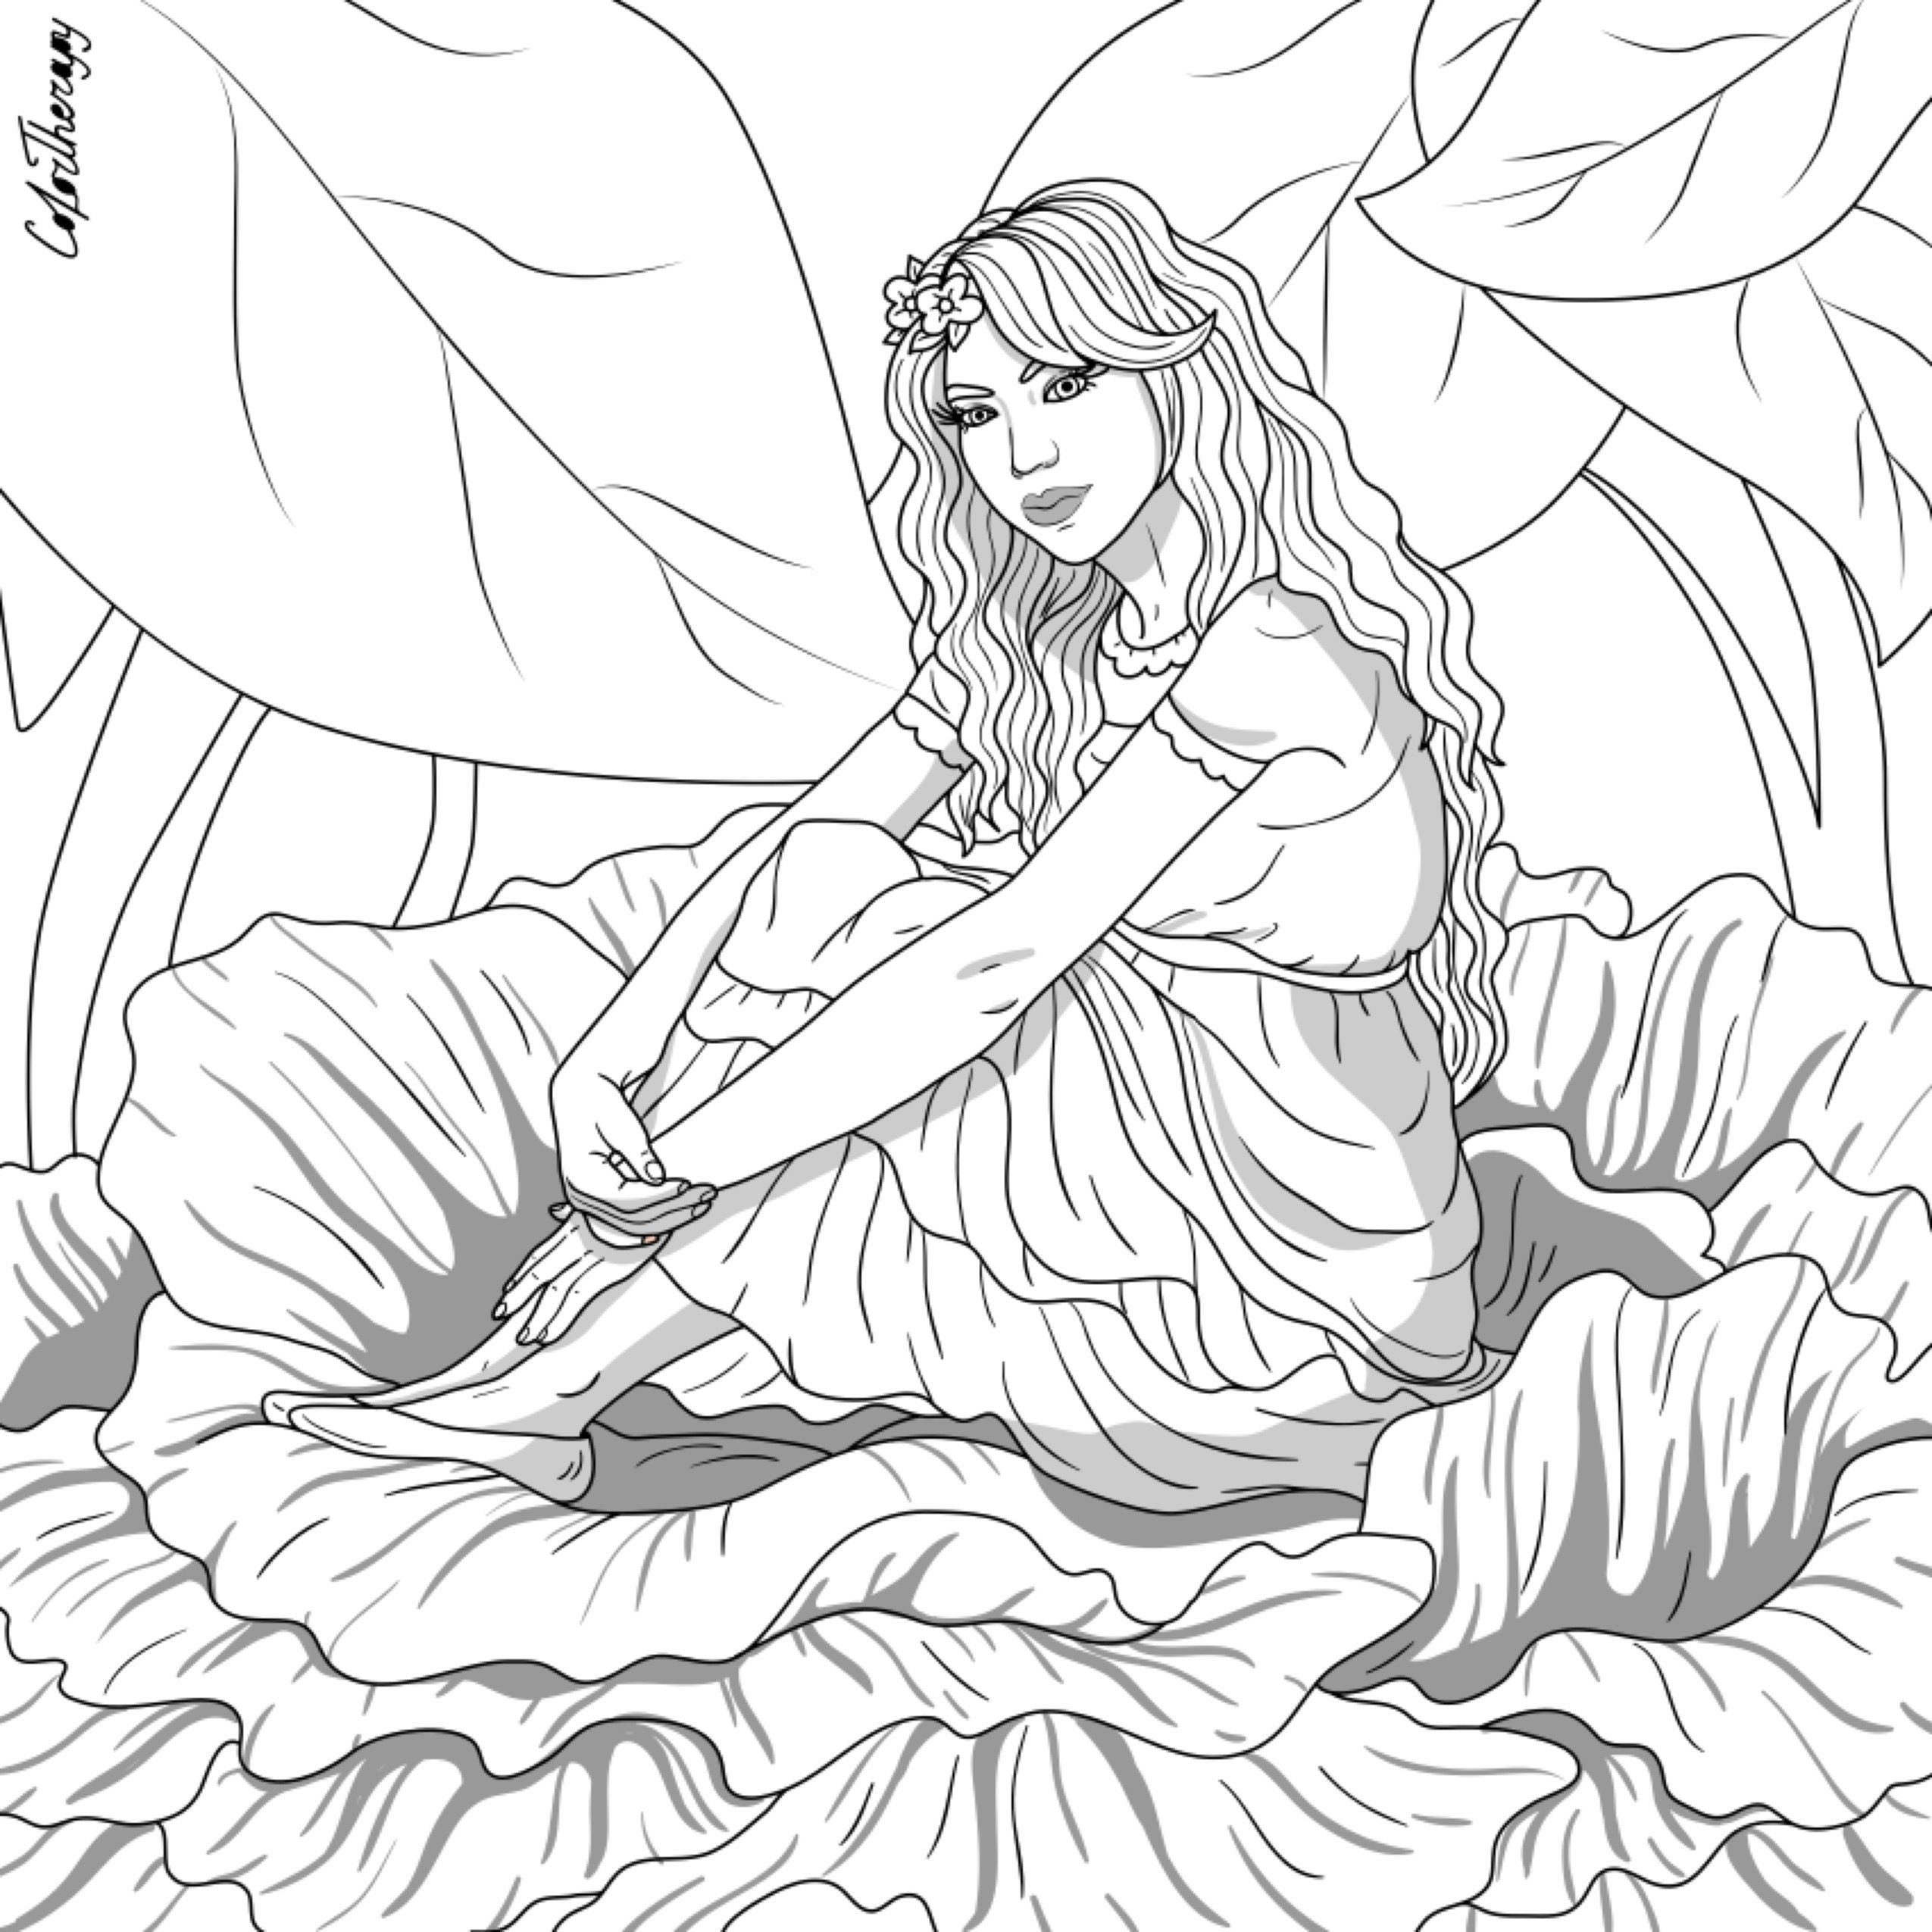 Coloring Pages For Adults Nature Best Of Pin By Gianna Fealy On Coloring Em 2020 Desenhos Para Colorir Colorir Desenhos